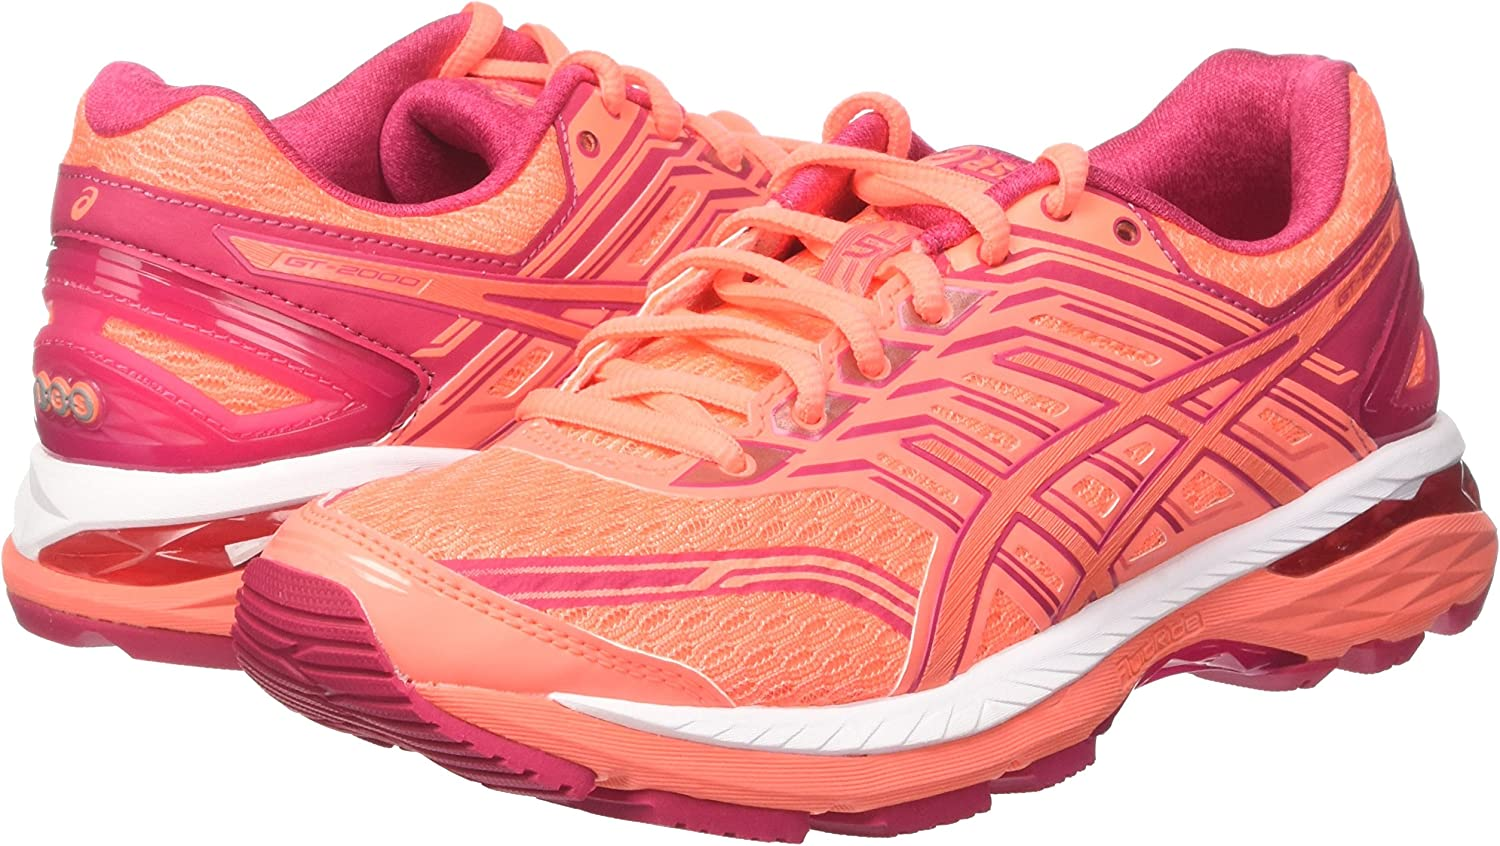 Asics GT 2000-5, Zapatillas de Running para Mujer, Naranja (Flash Coral/Coral Pink/Bright Rose), 37 EU: Amazon.es: Zapatos y complementos